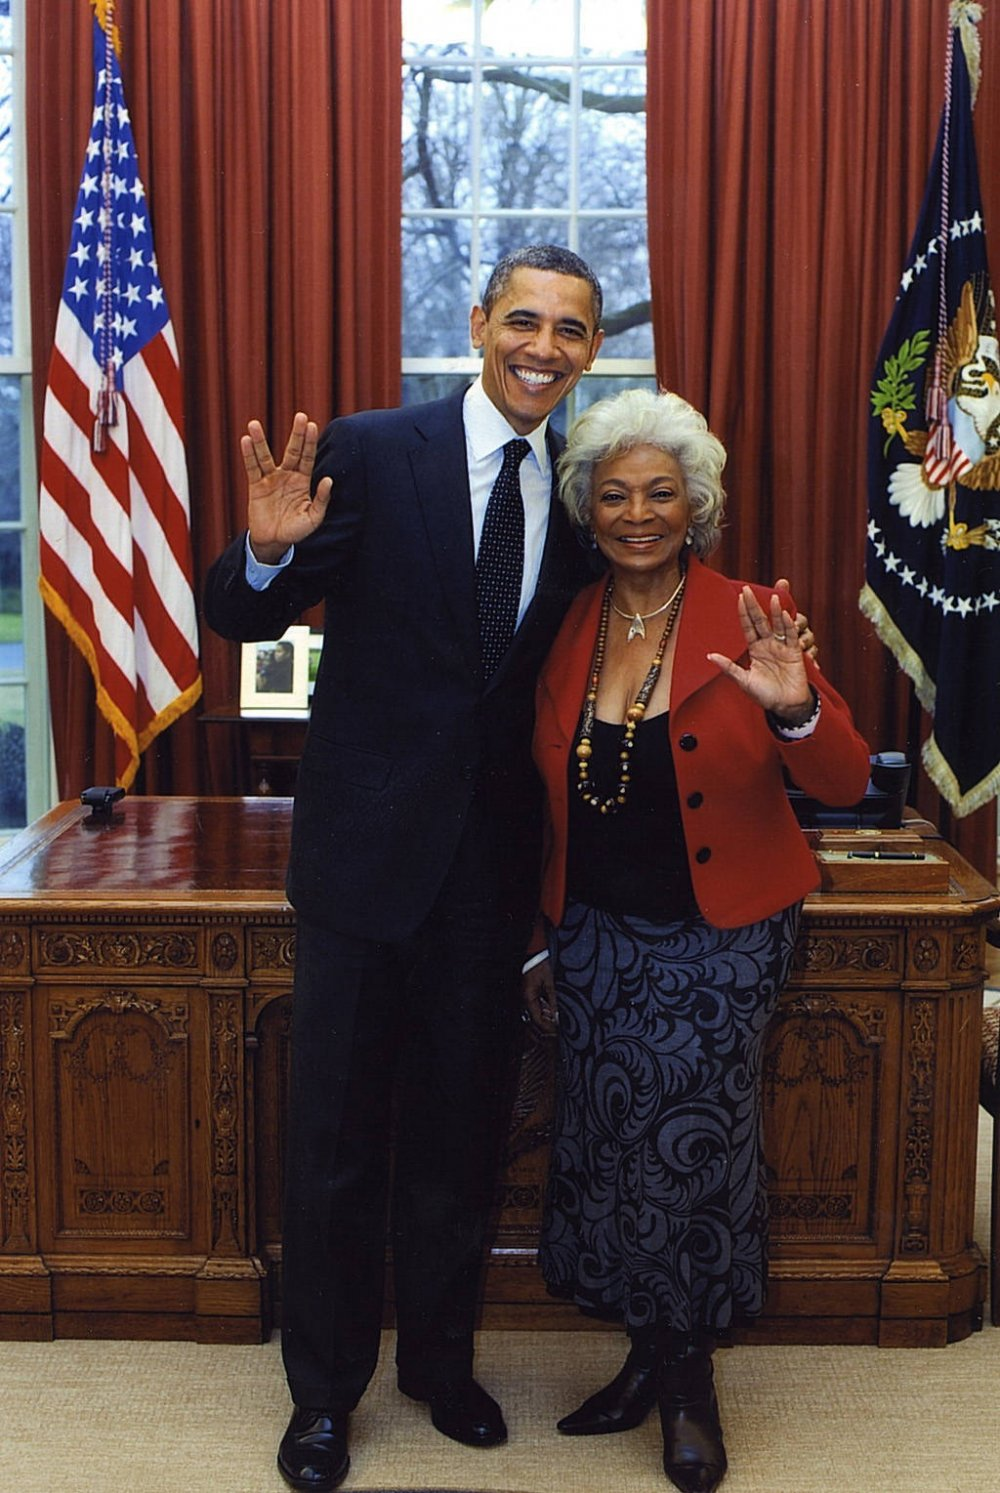 President Obama meets Lieutenant Uhura actor Nichelle Nichols in the White House